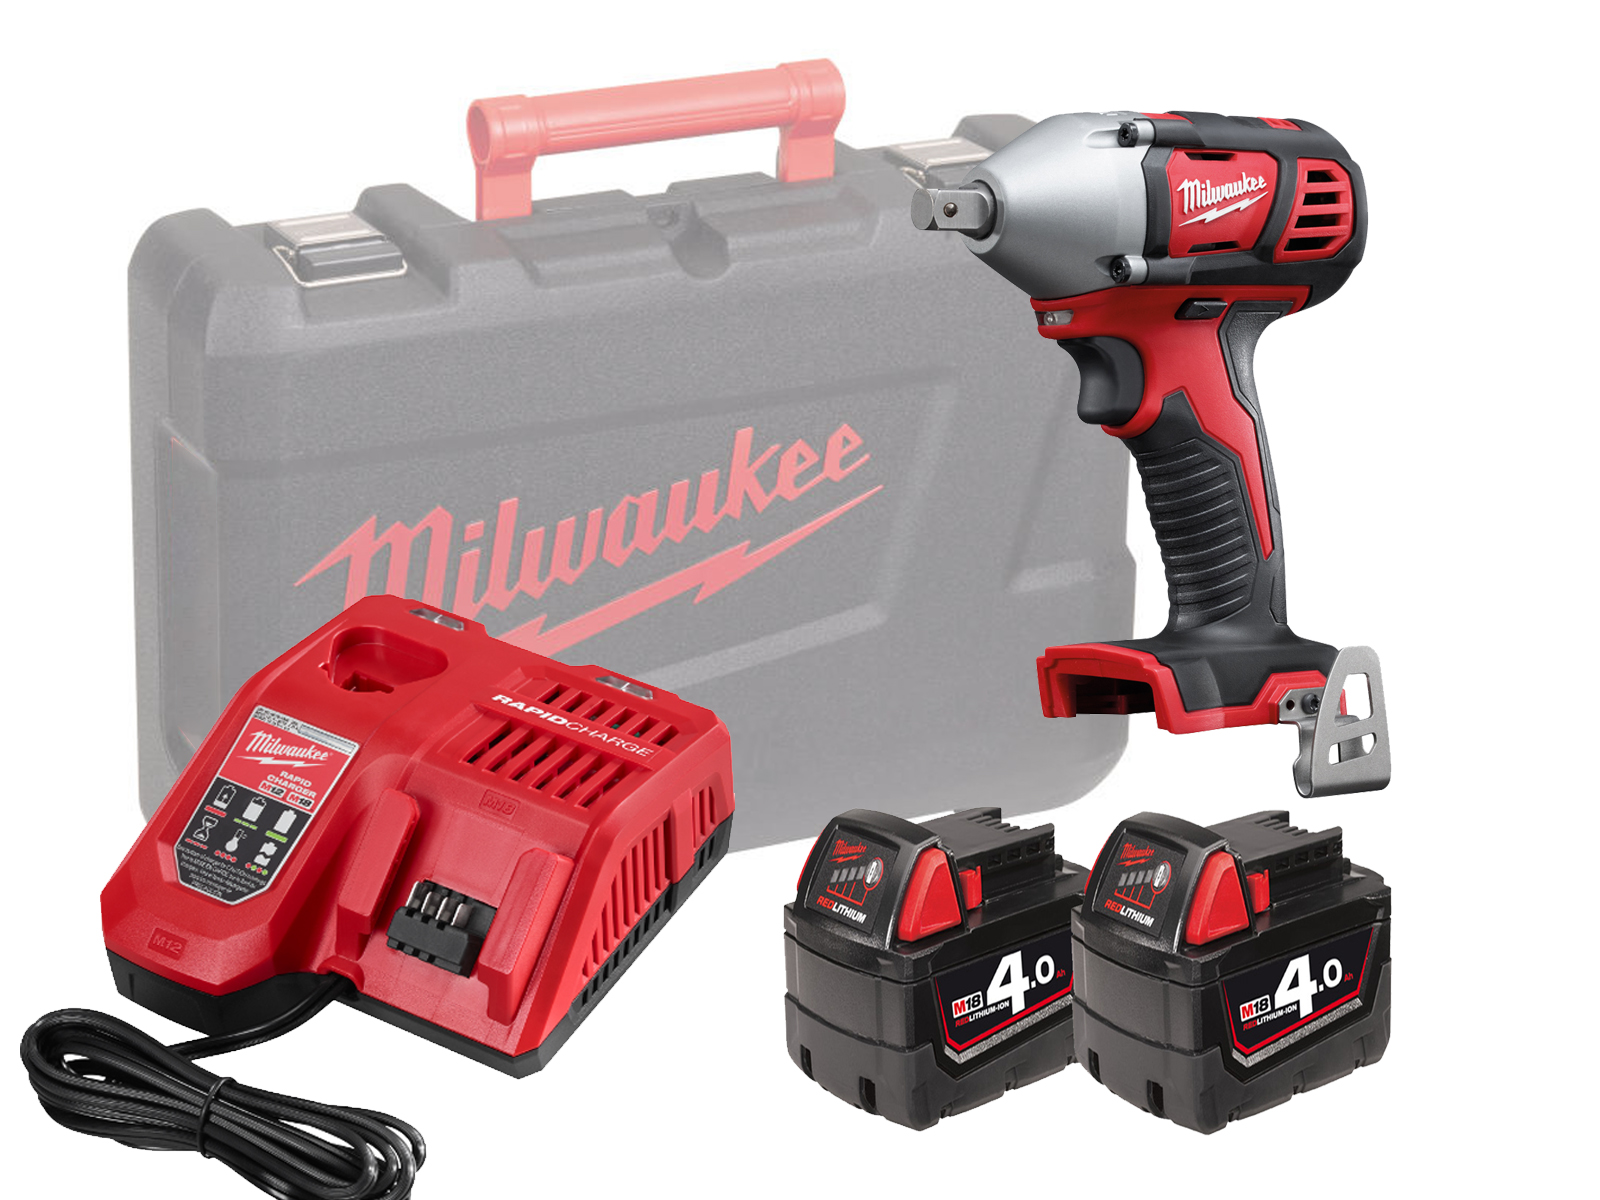 "MILWAUKEE 18V BRUSHED IMPACT WRENCH 1/2"" - M18BIW12 - 4.0AH PACK"